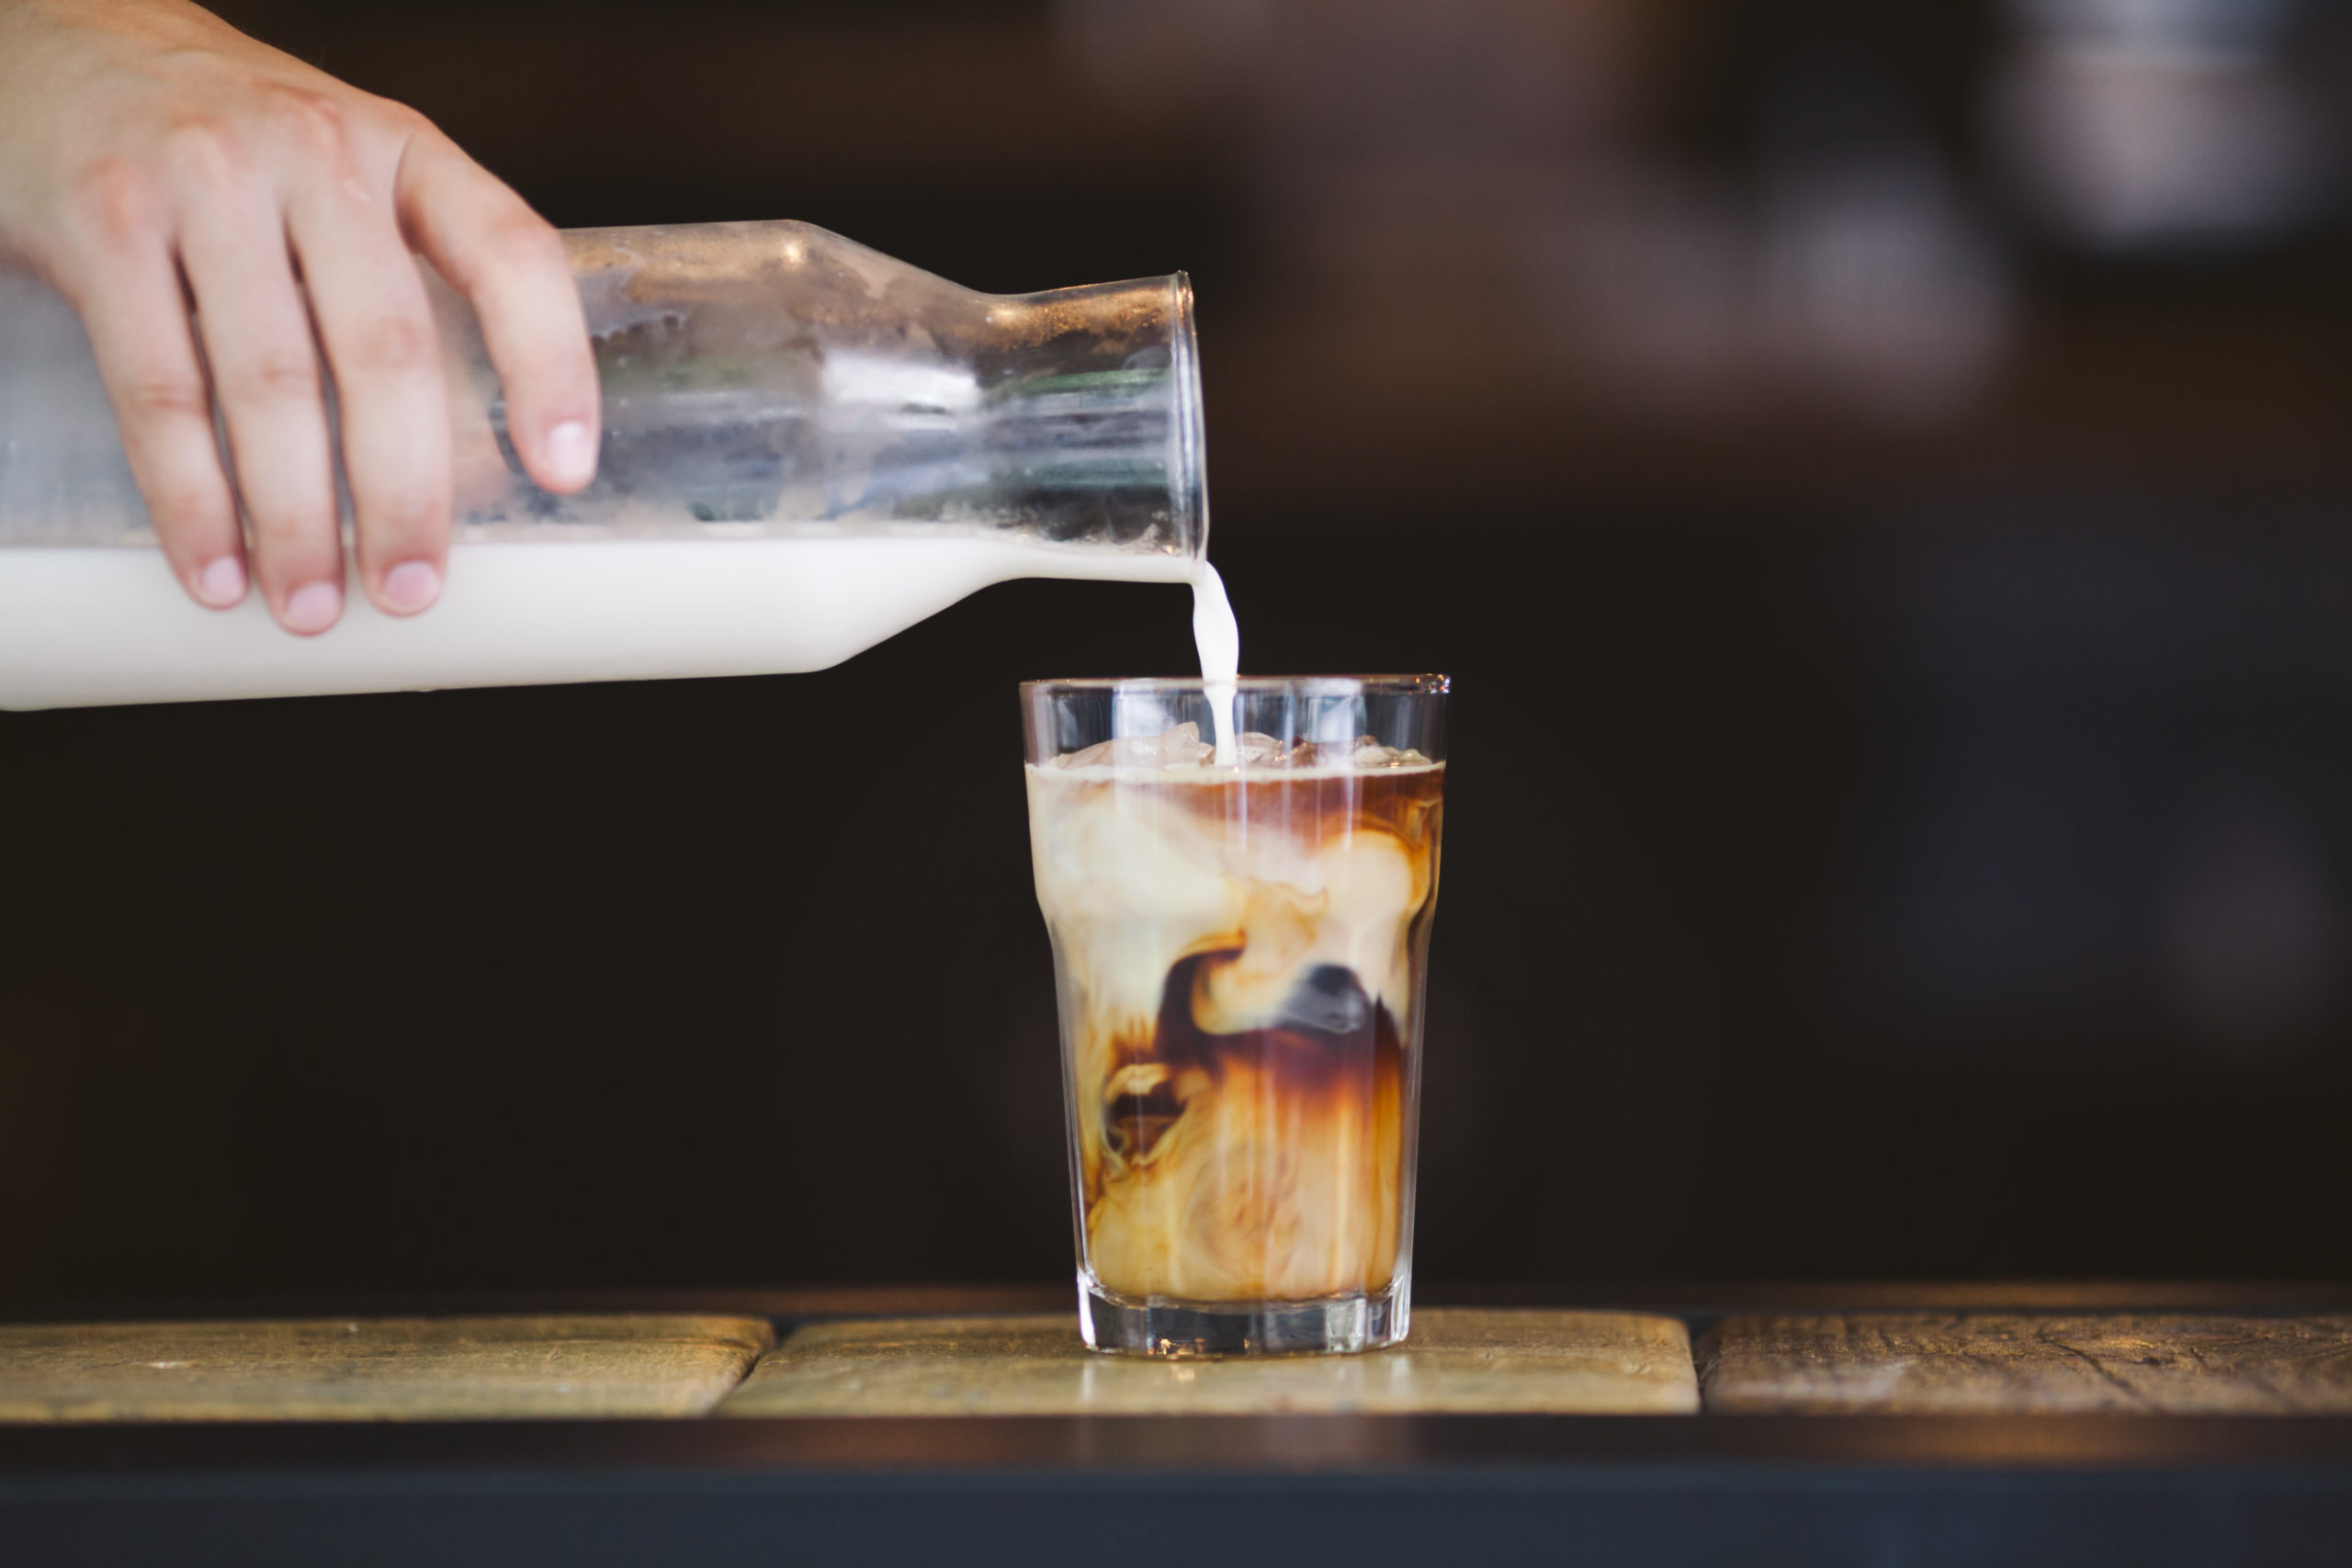 A person pouring milk from a jar into a cup of iced coffee